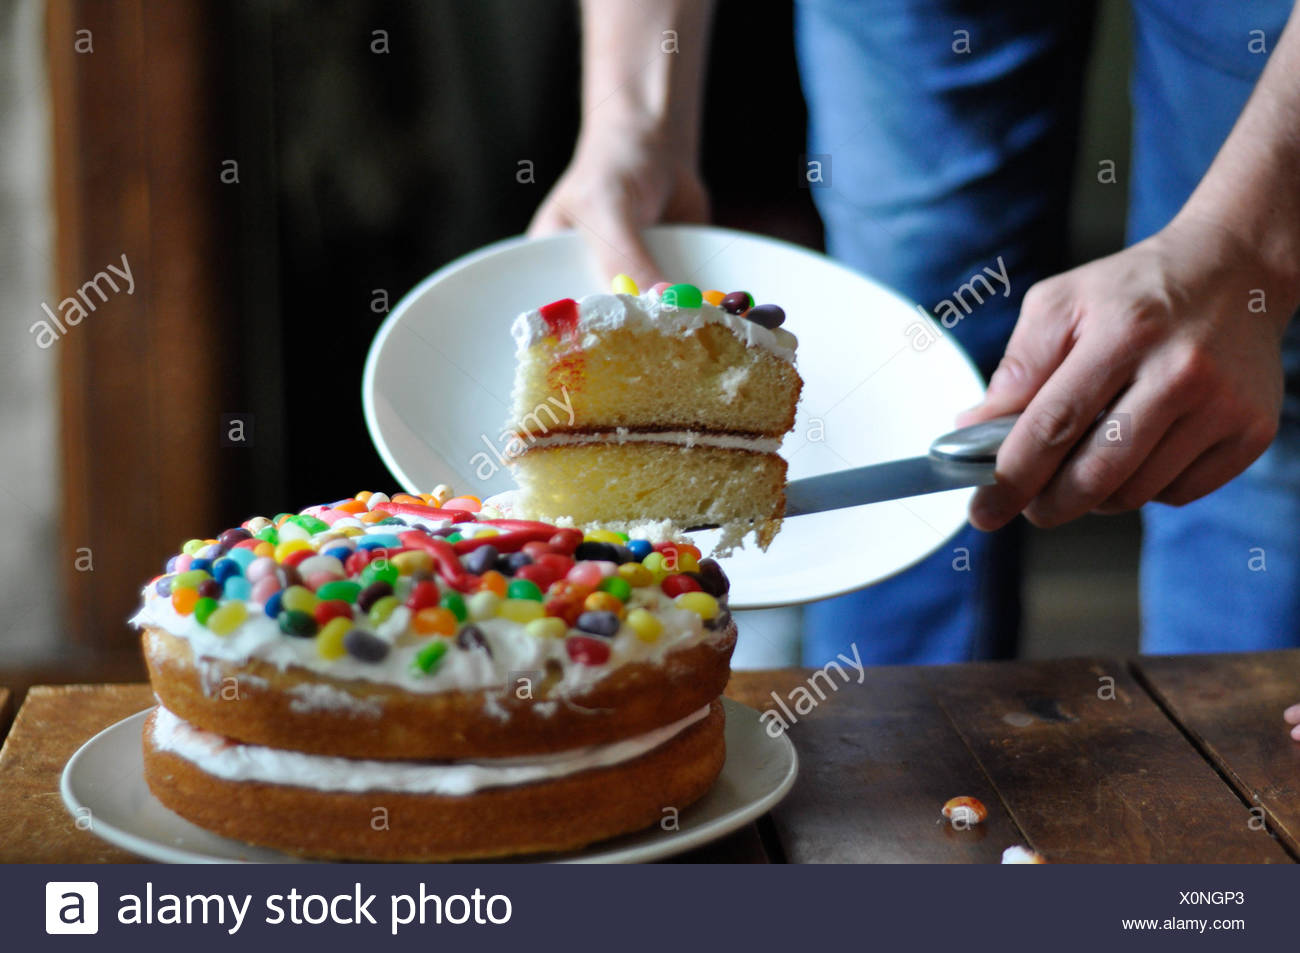 Man cutting a slice of birthday cake - Stock Image